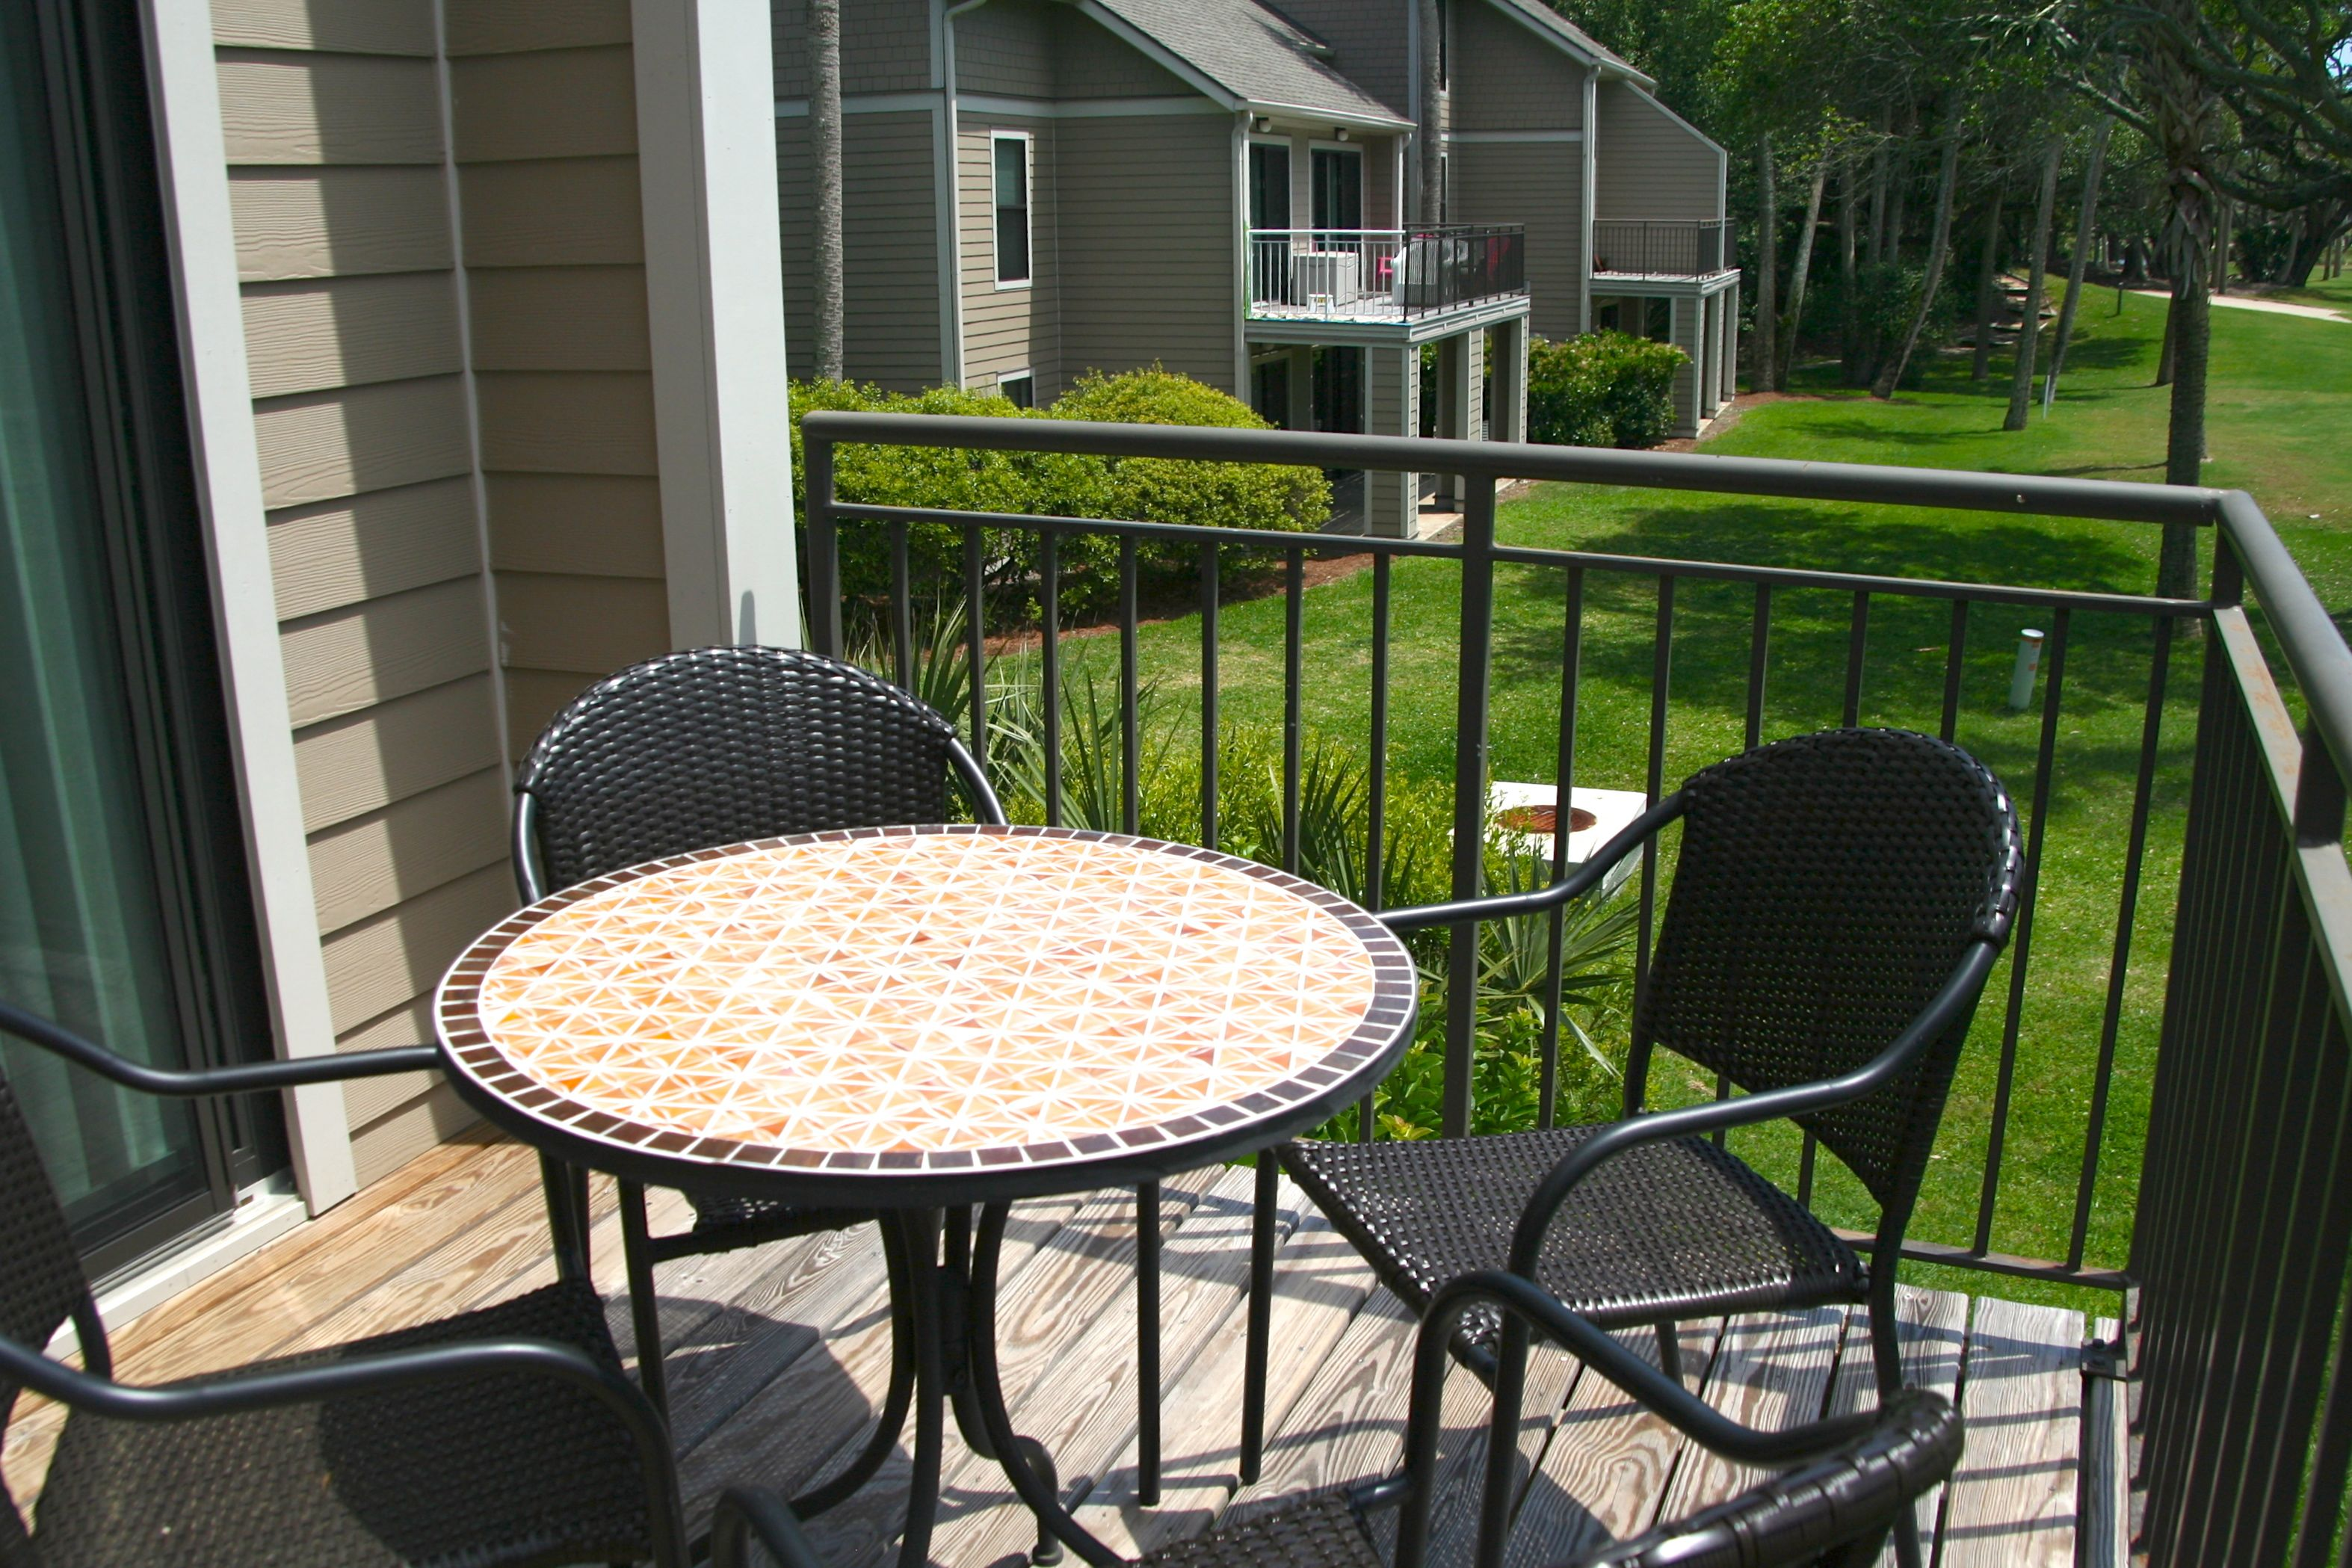 Enjoy dining on the deck.